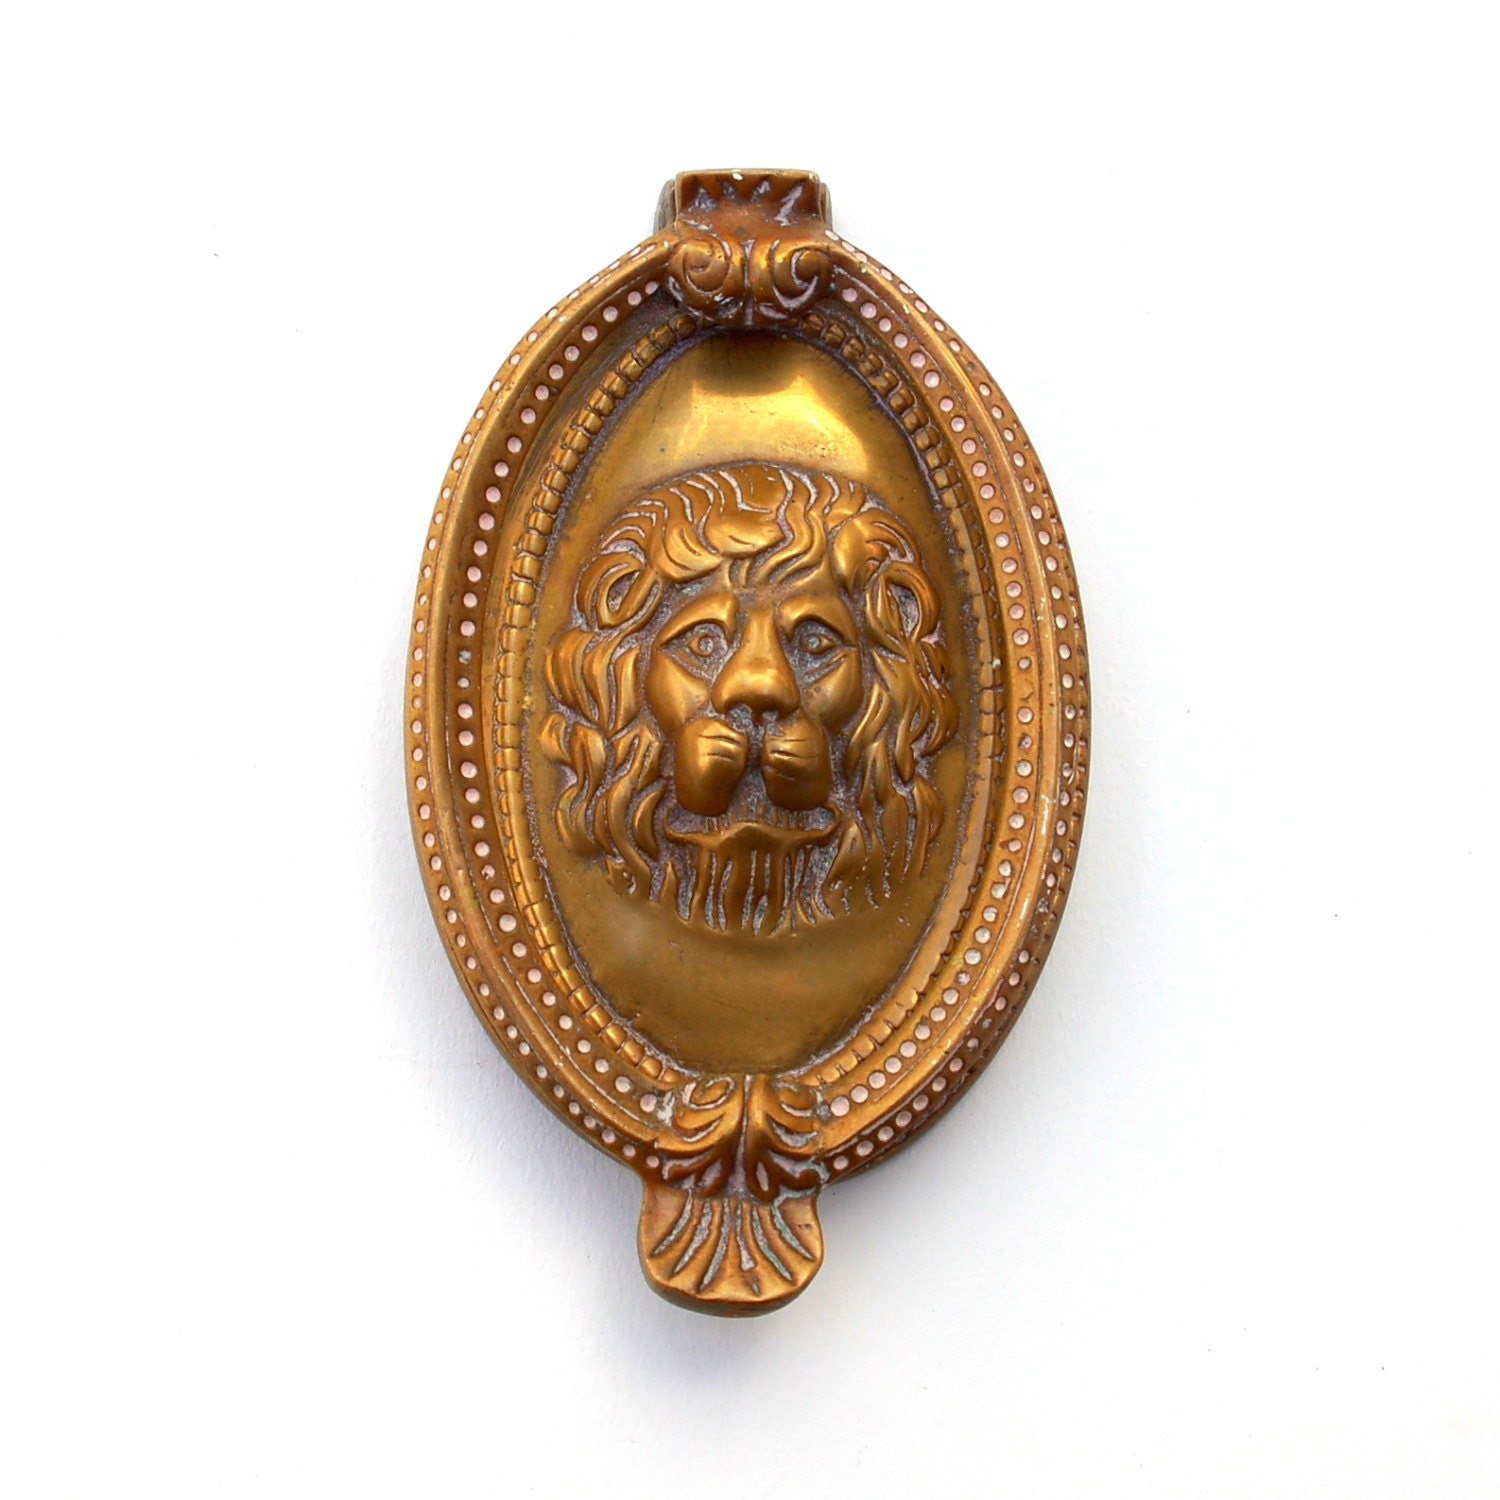 Antique lion door knocker brass oval cameo by knockplease on etsy - Antique brass door knocker ...